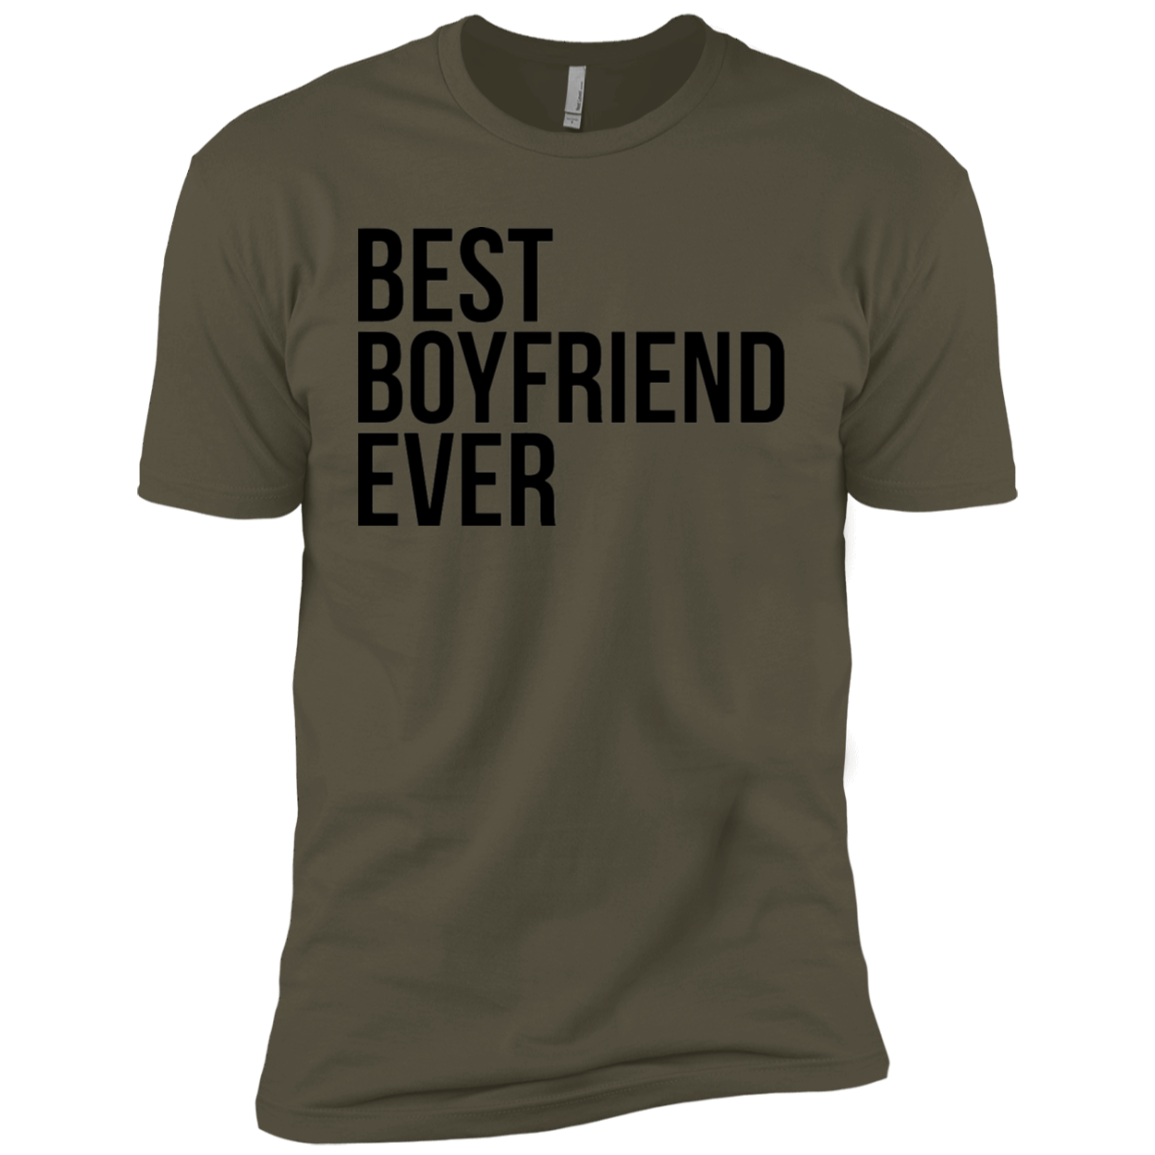 Best Boyfriend Ever Men's Classic Tee - Trendy Tees